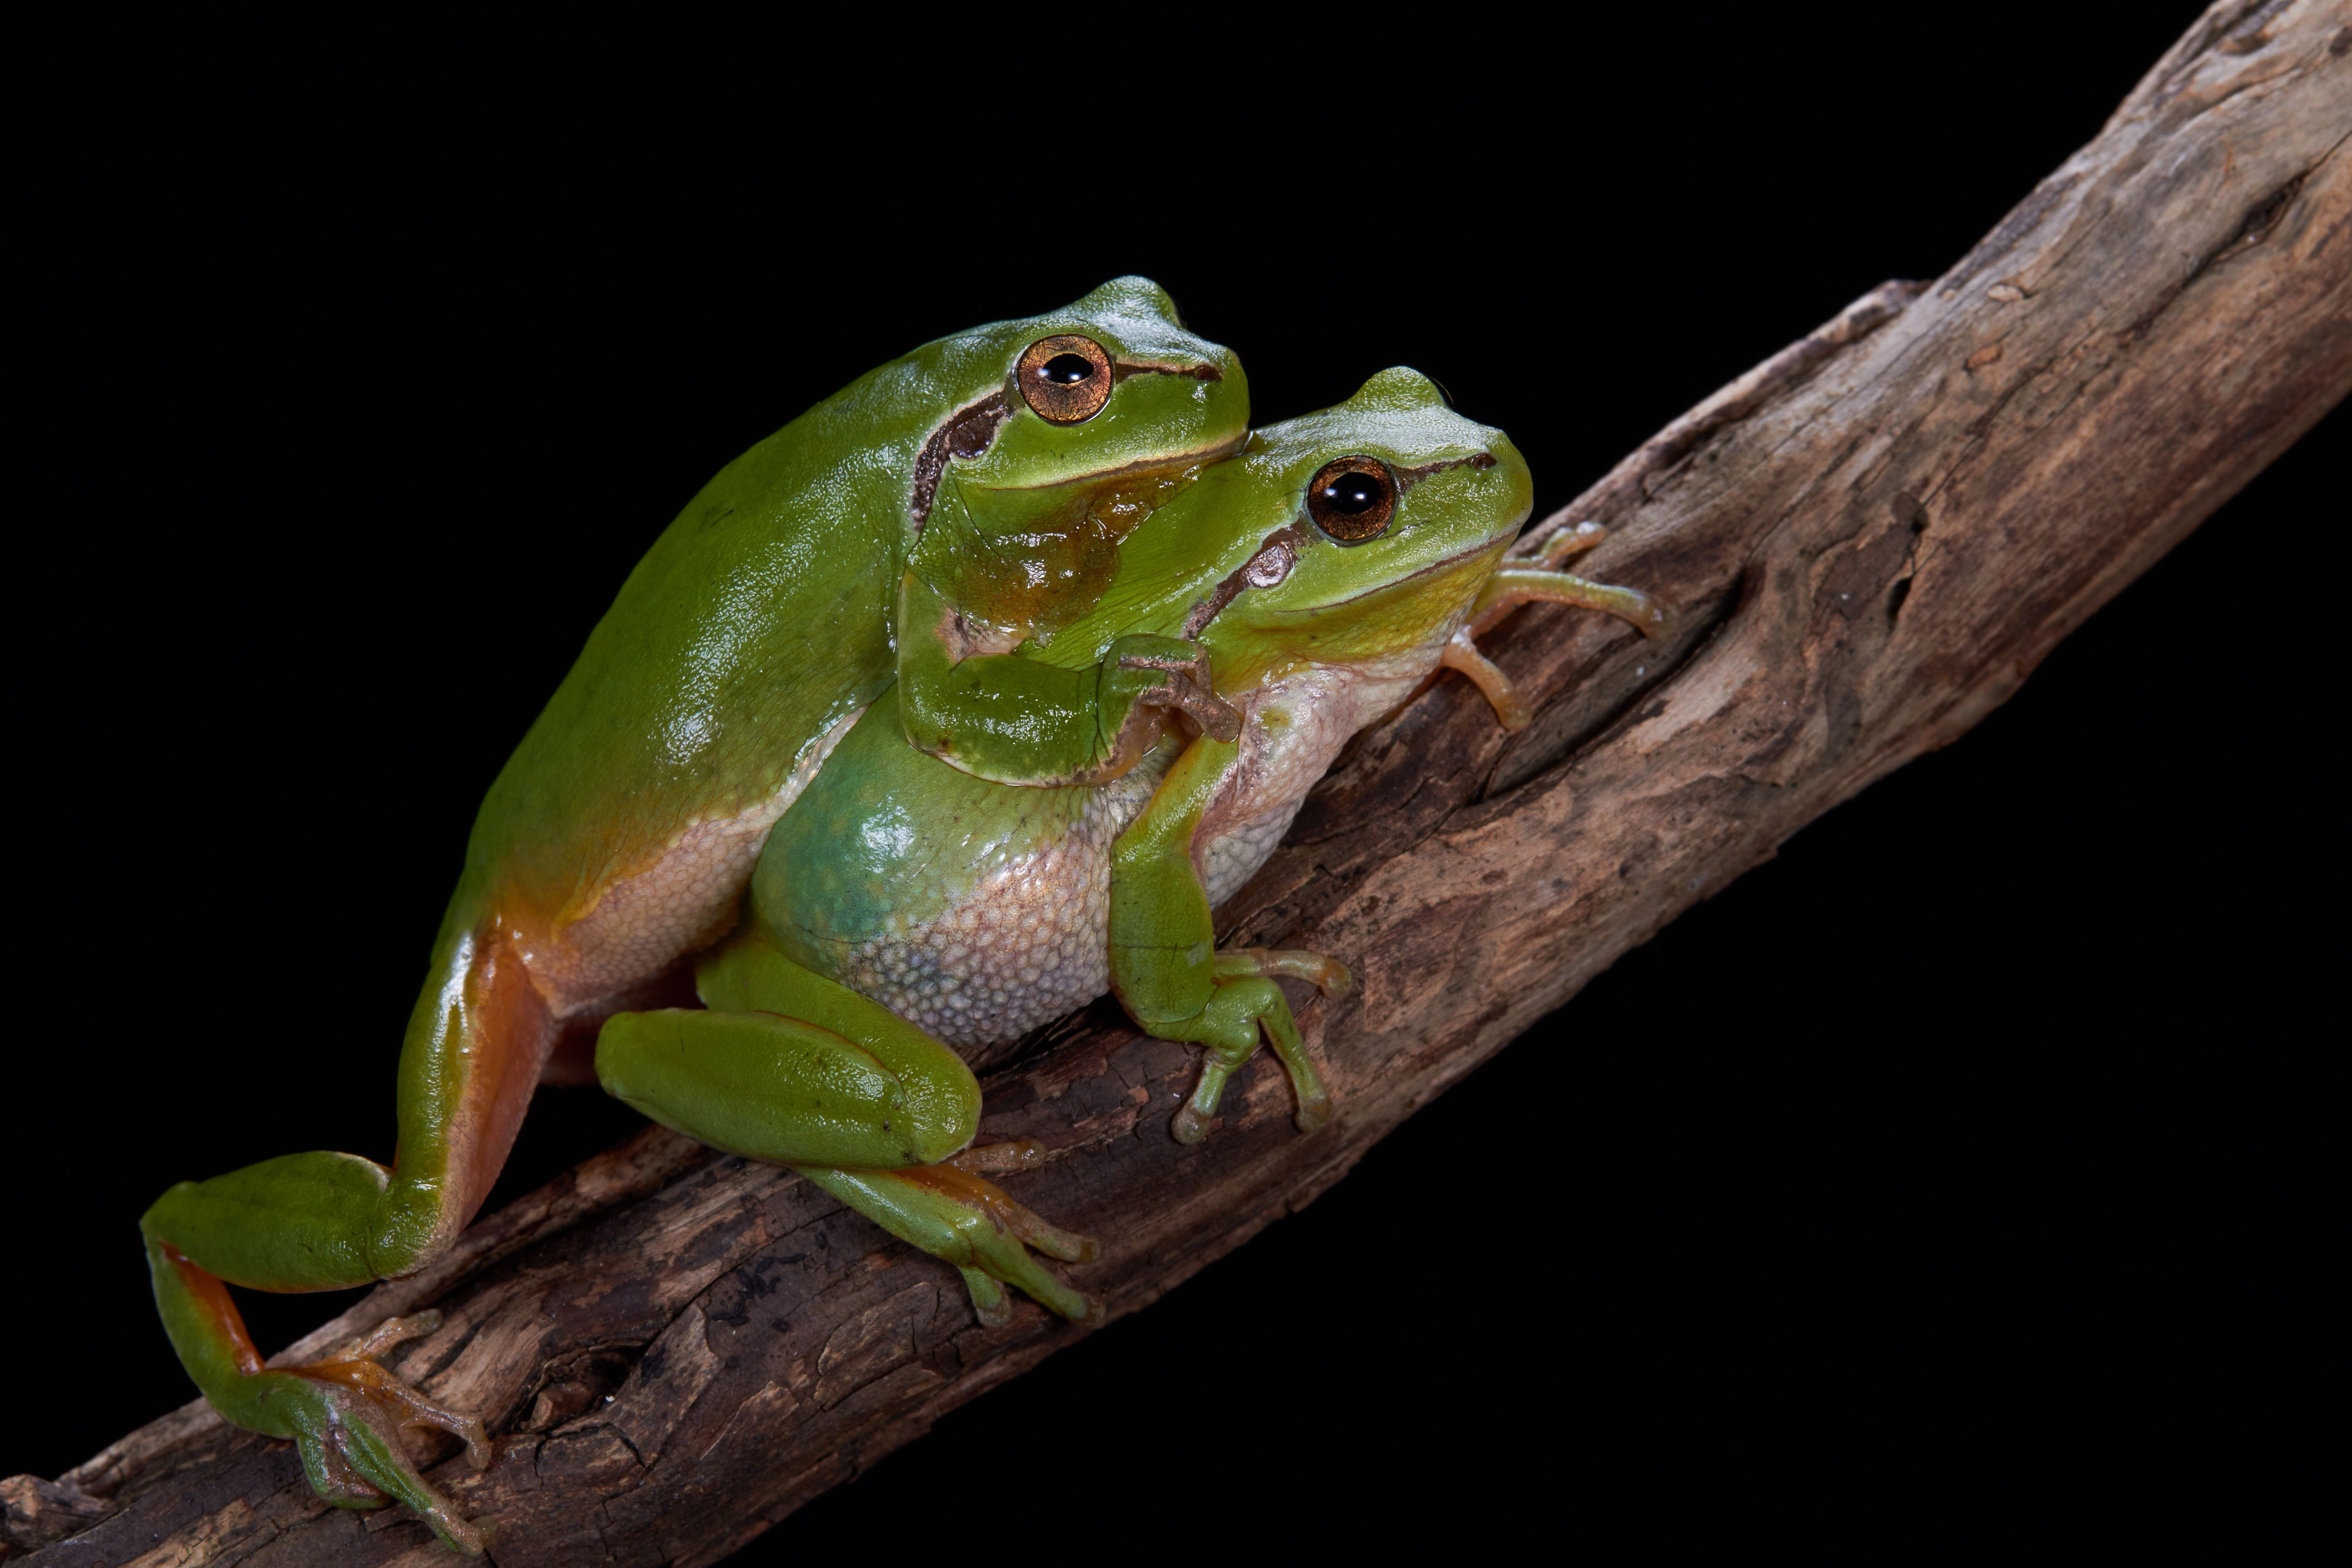 Amphibian Life Cycle Overview